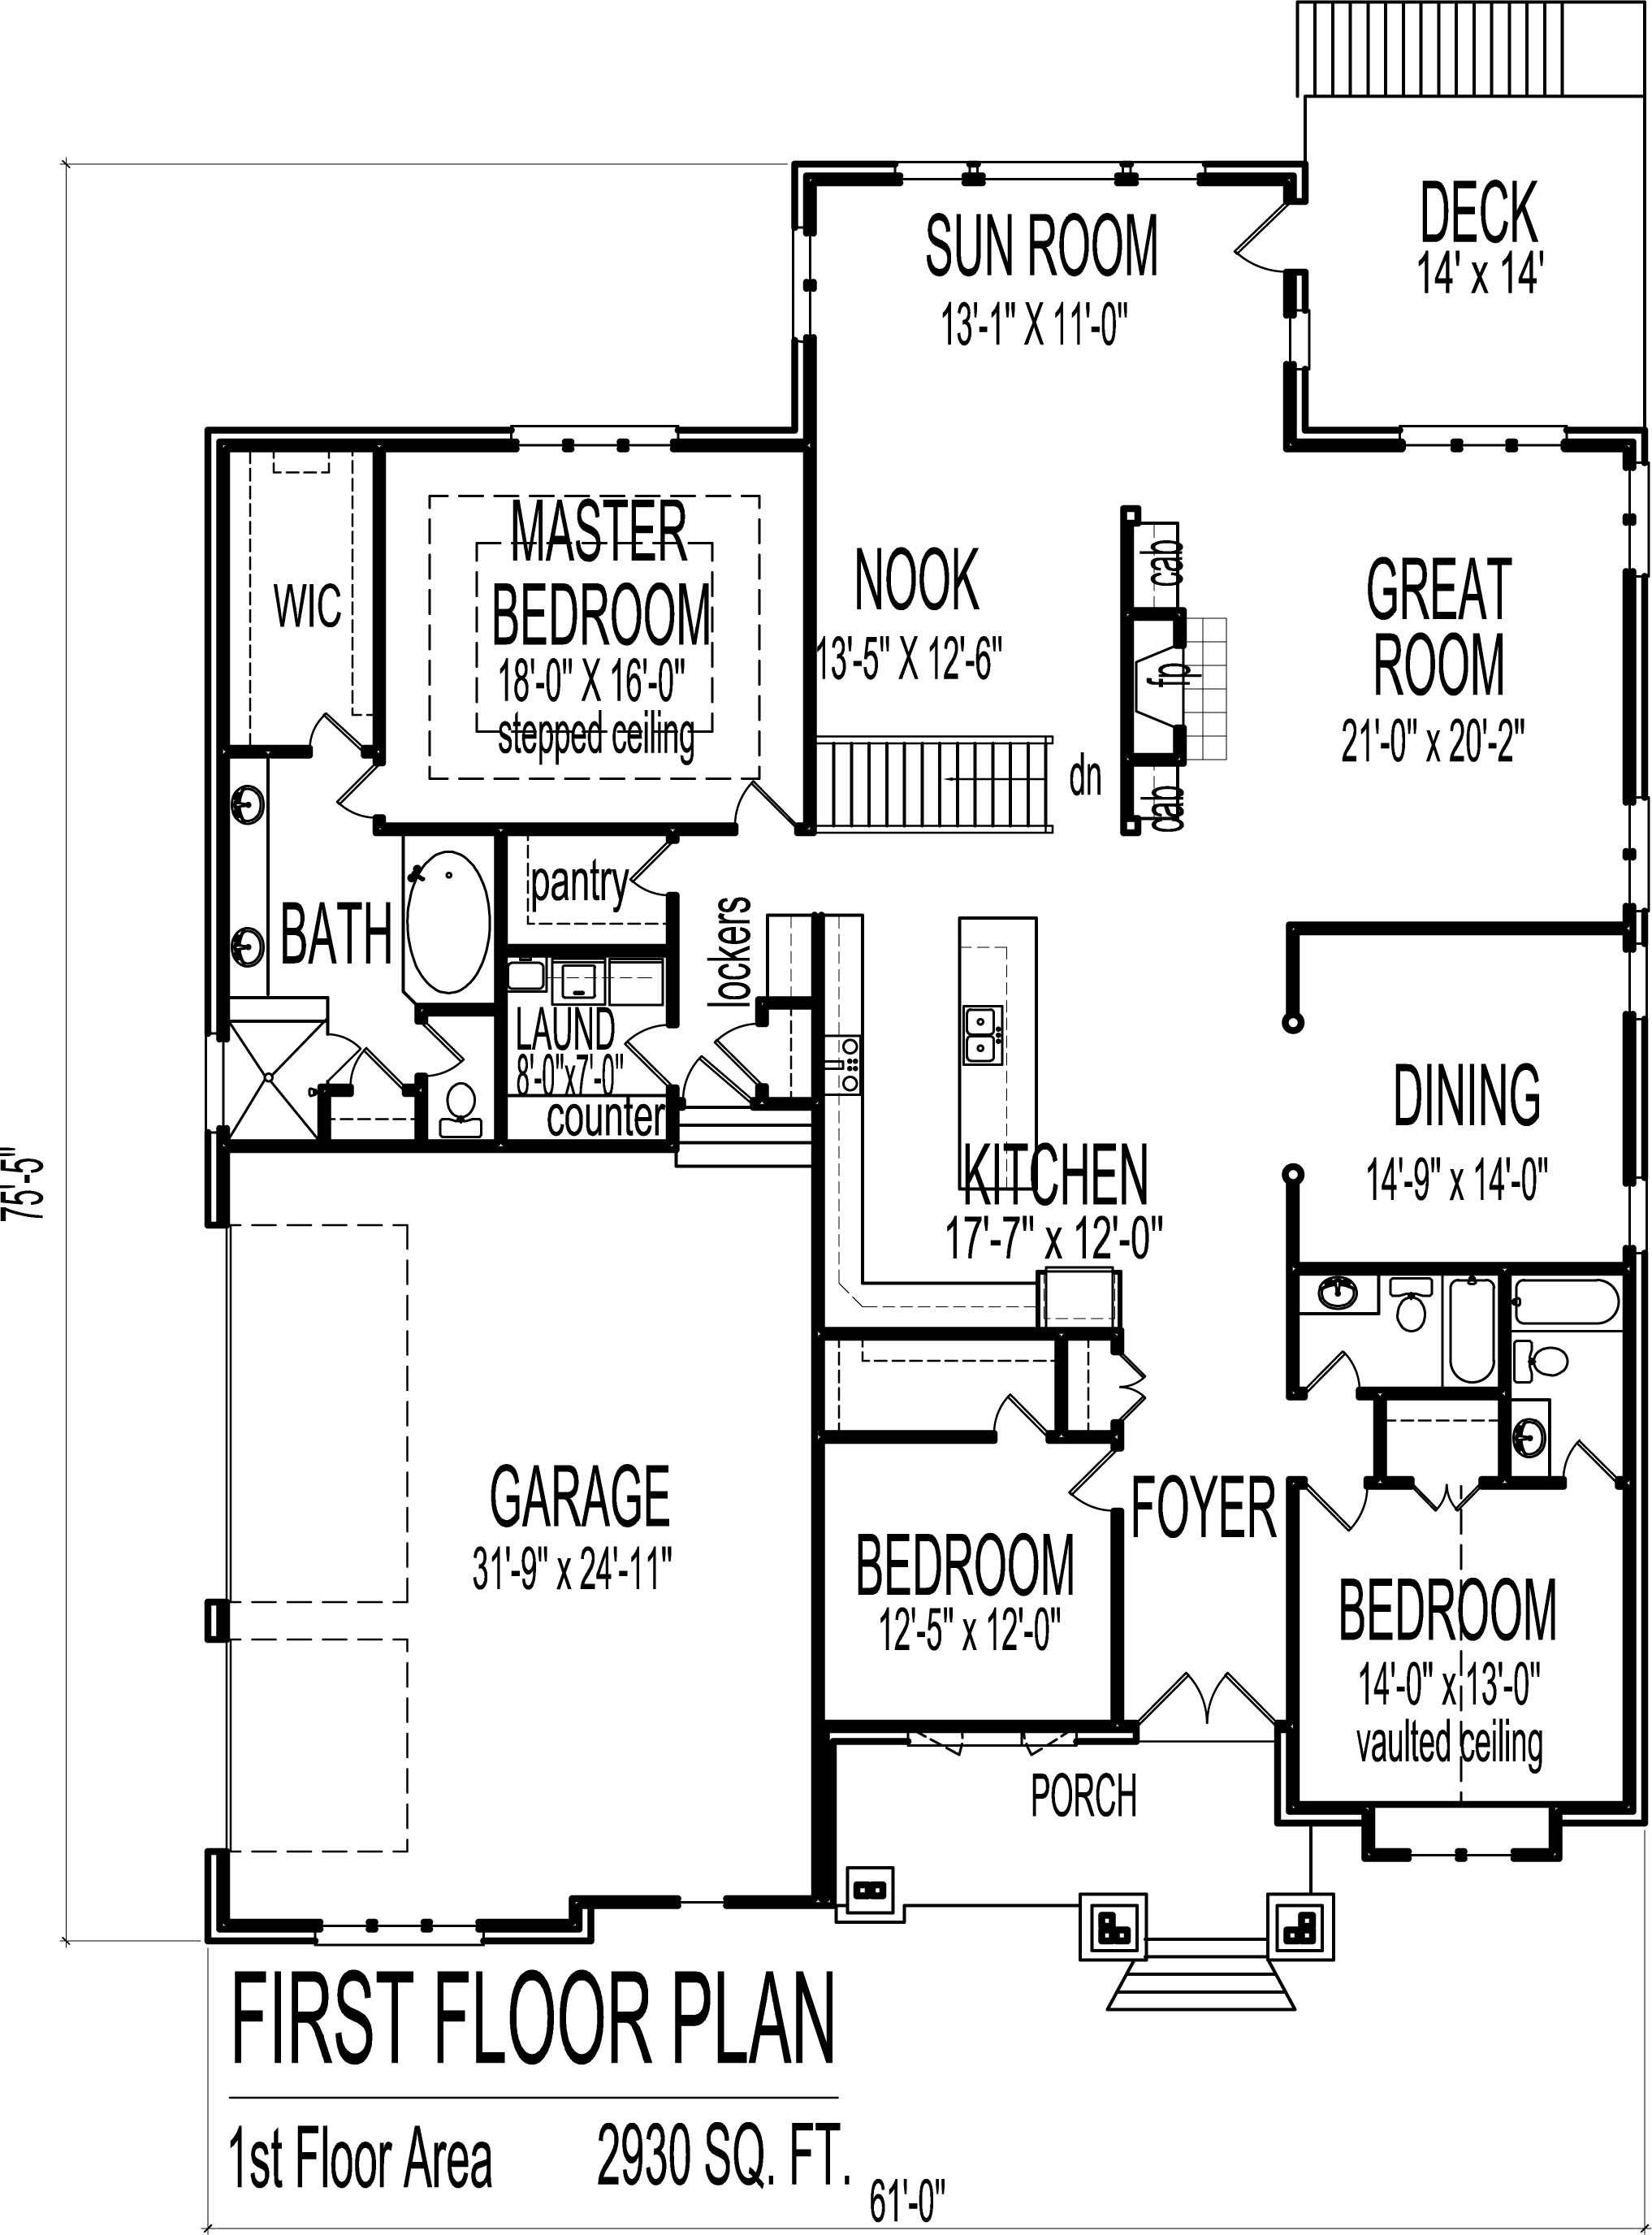 house plans luxury bungalow 3 bedroom 1 story 2500 sf